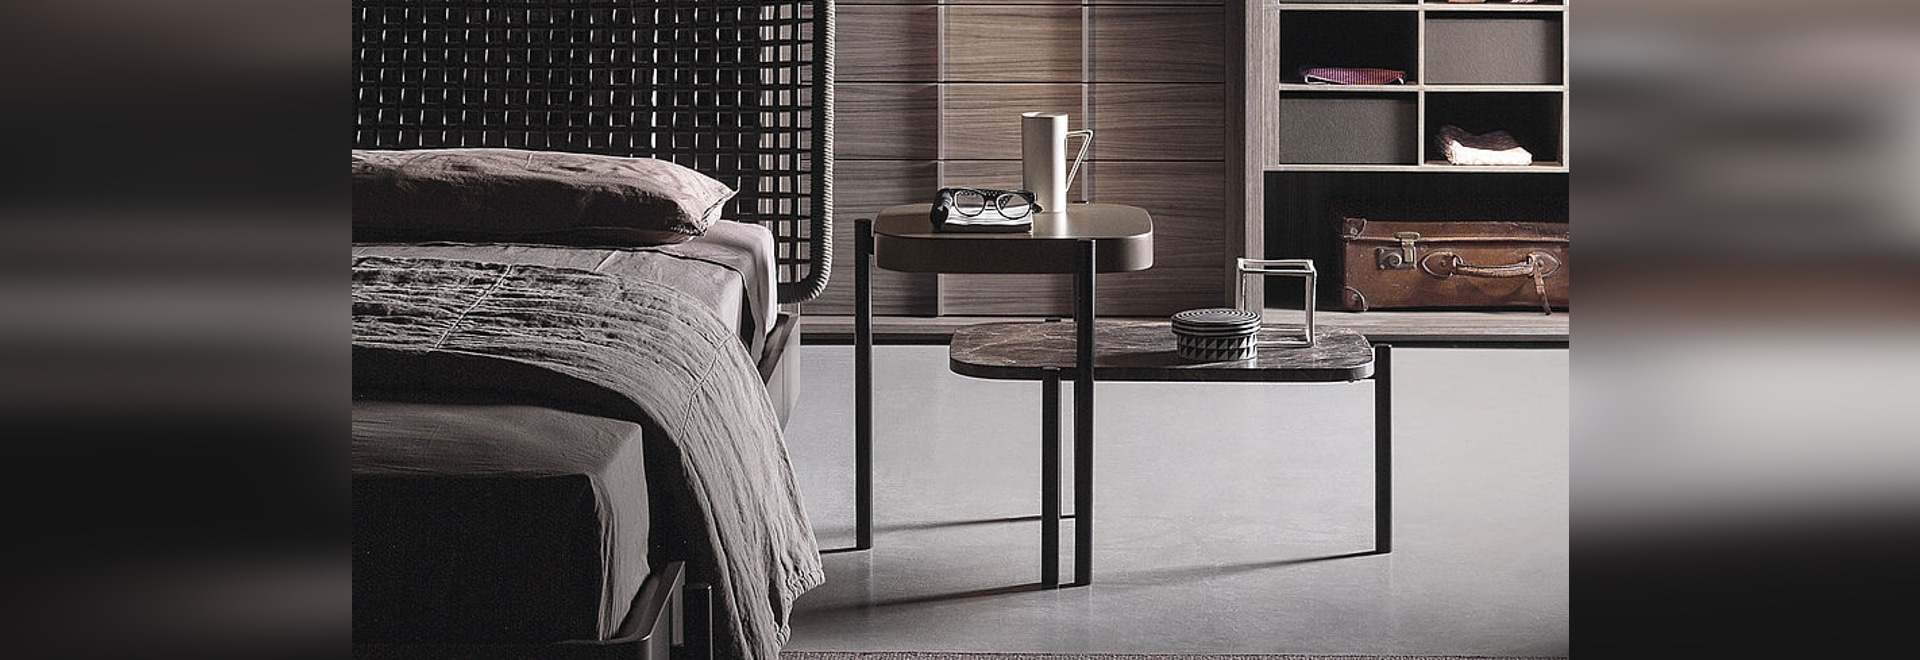 NEW: bedside table by Former